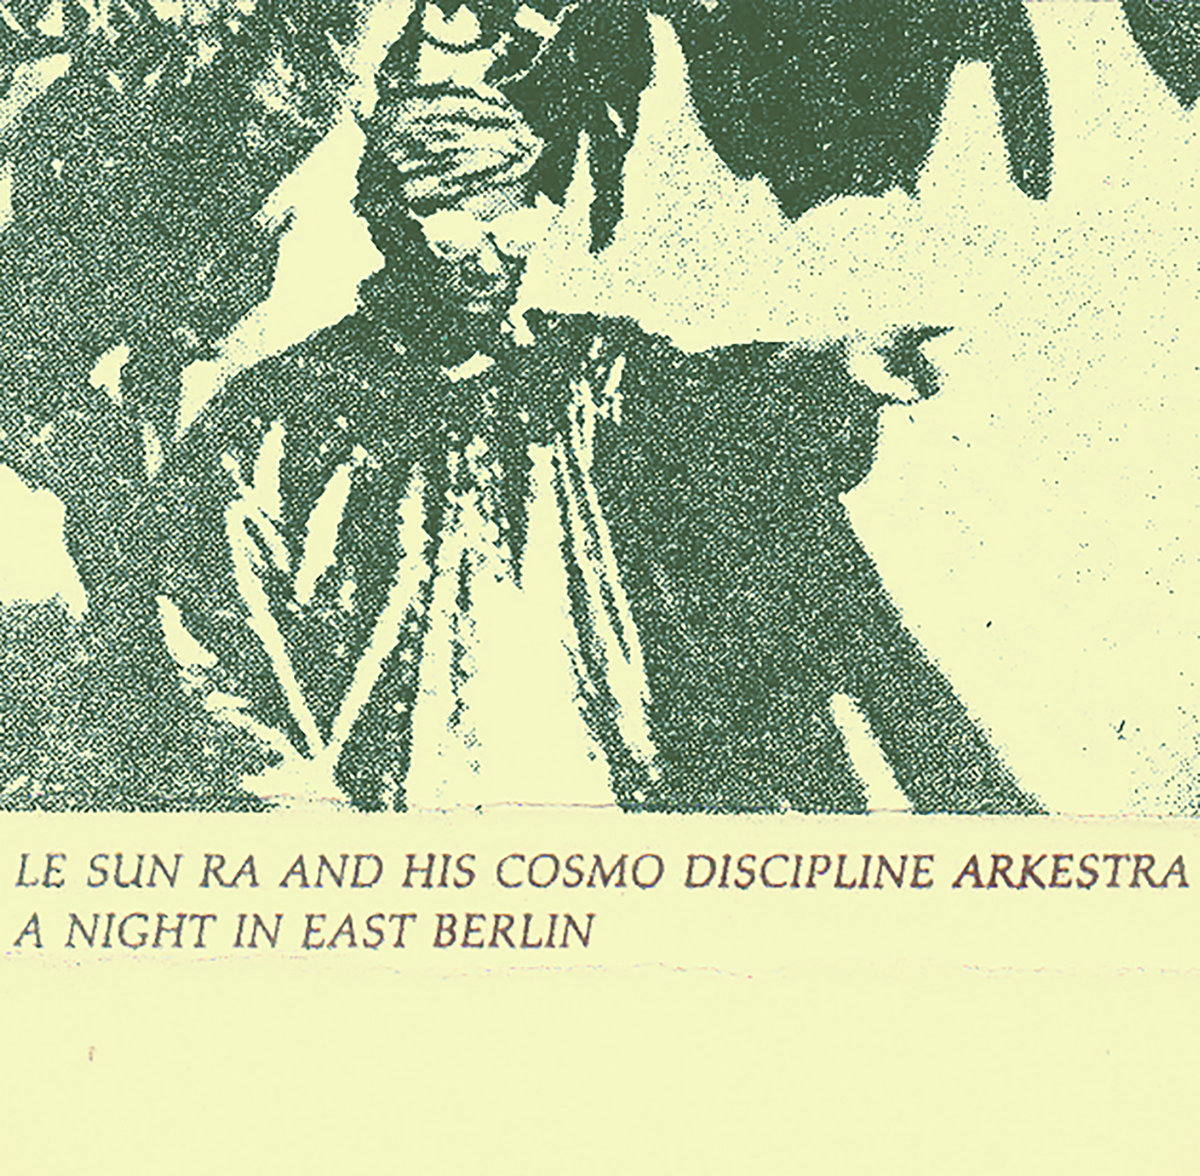 Cosmo Berlin Pmm Le Sun Ra And His Cosmo Discipline Arkestra Night In East